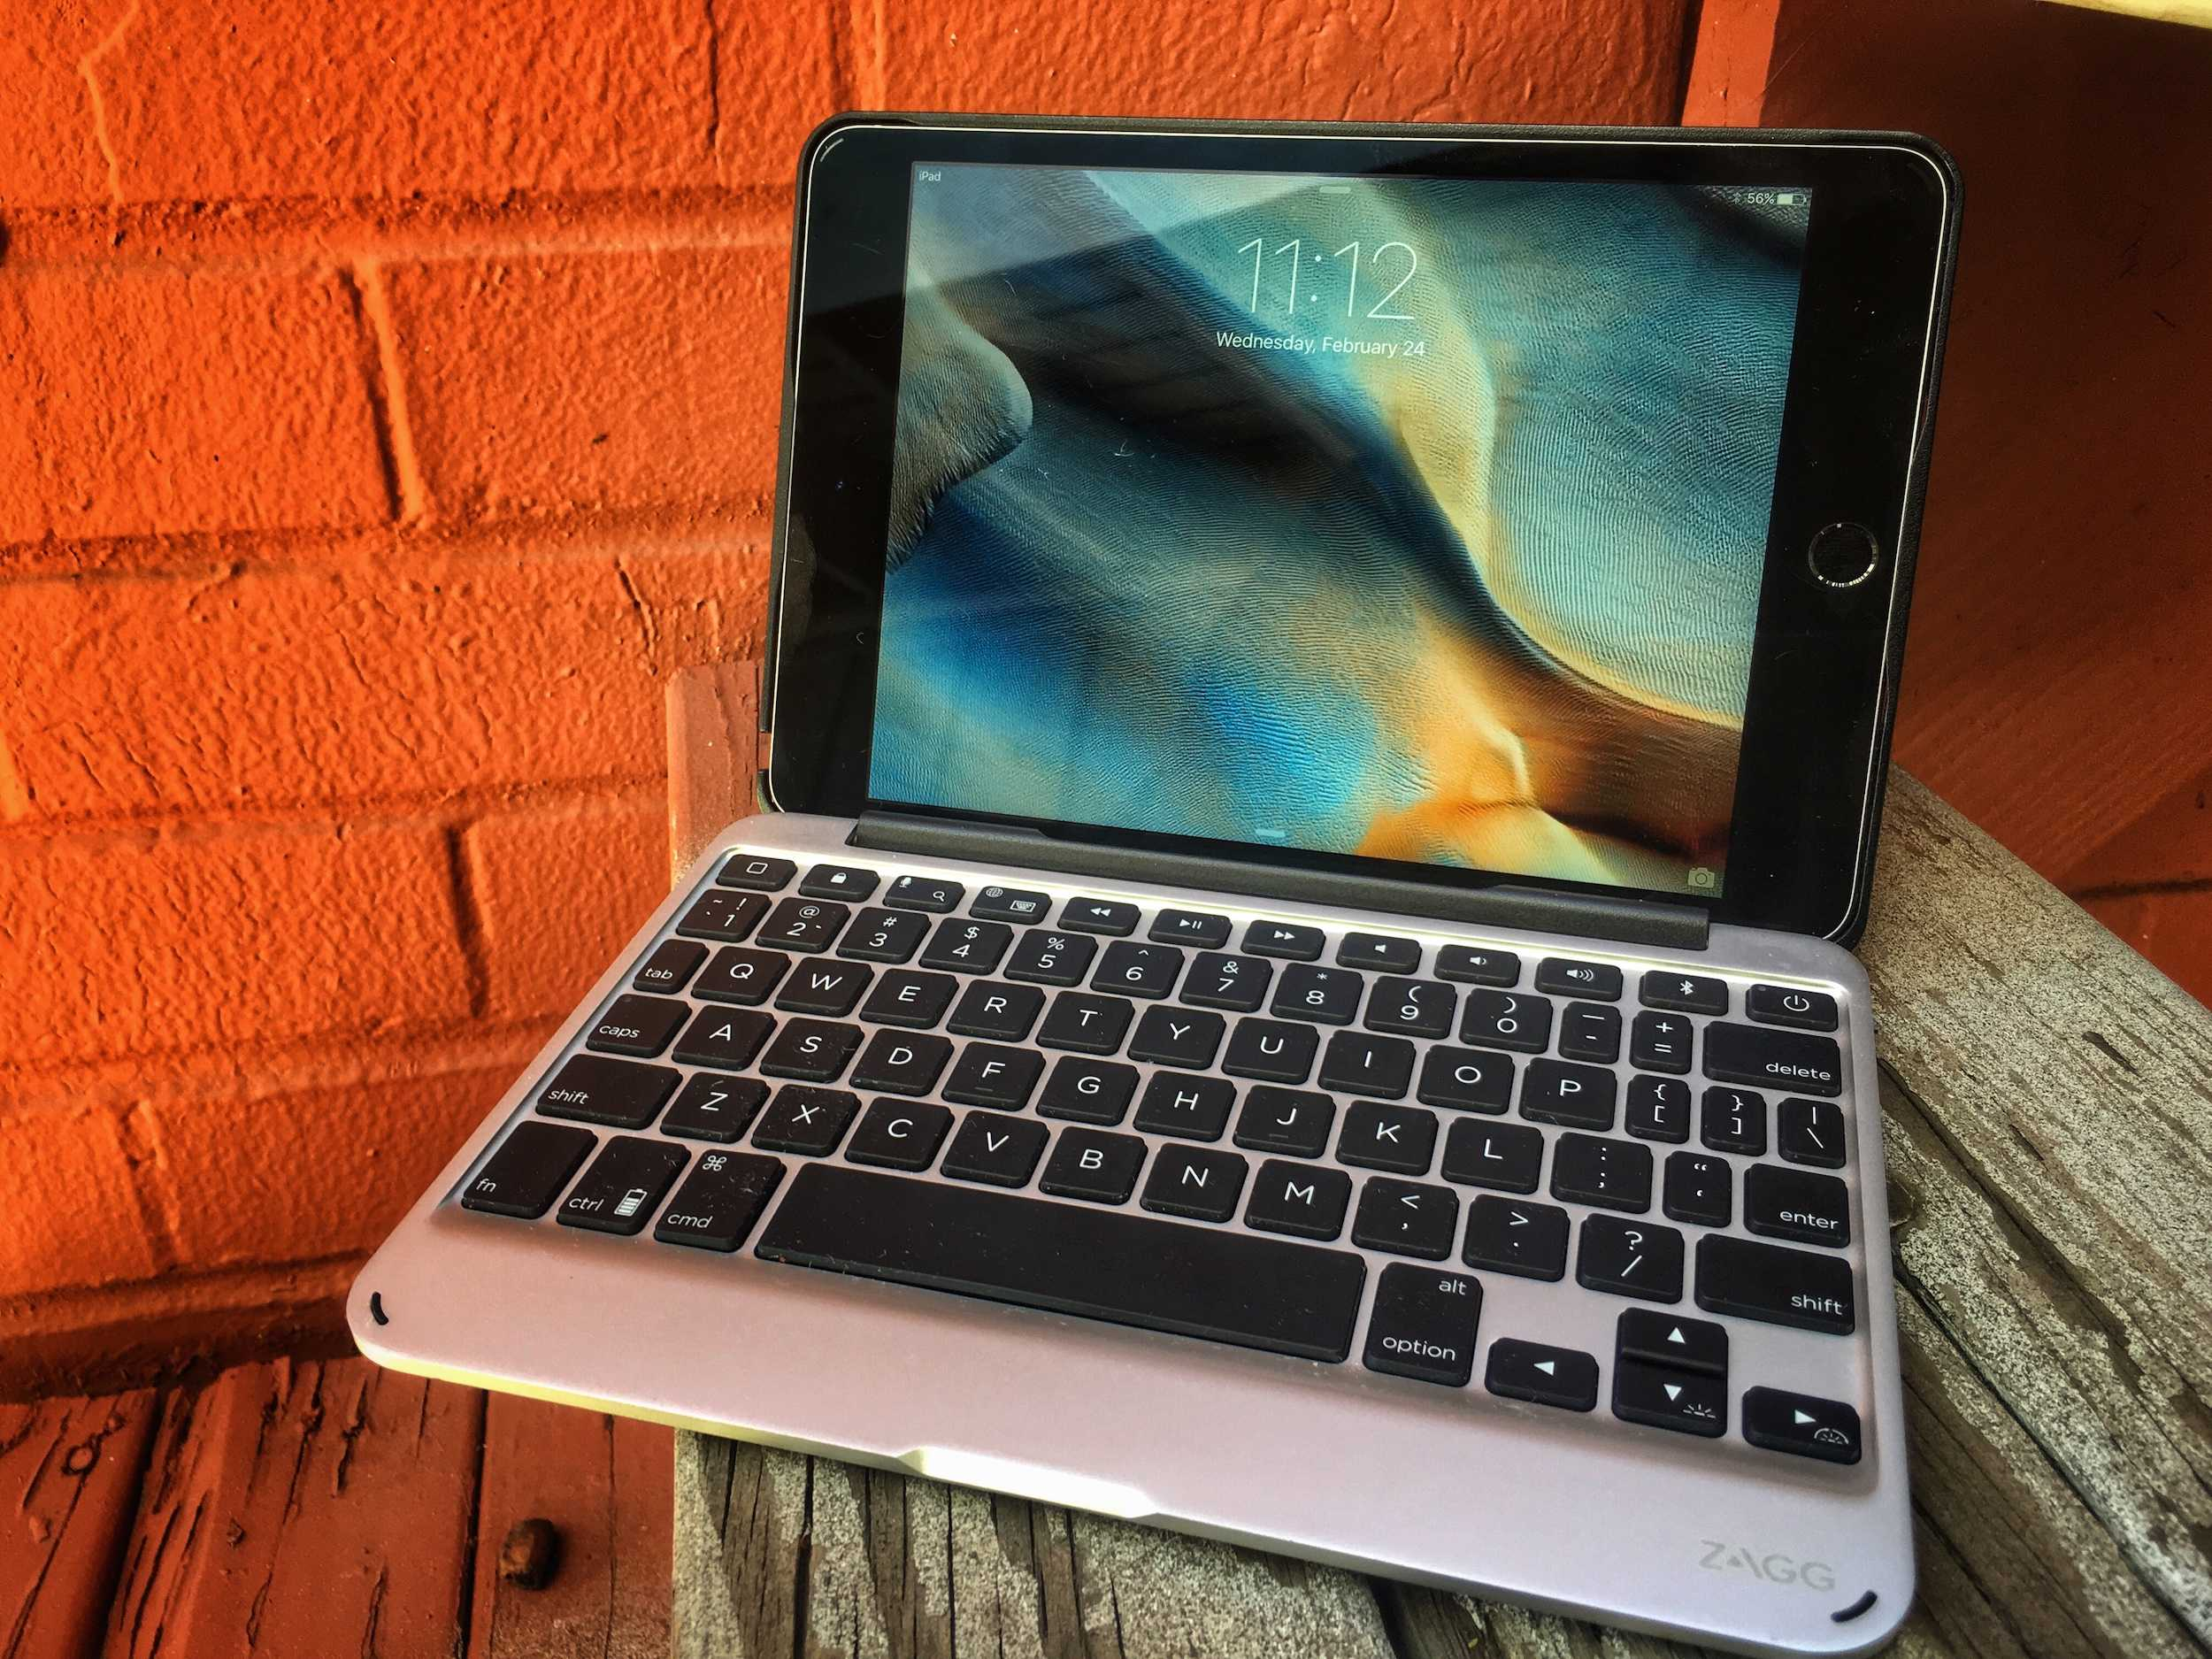 Zagg Slim Book turns the iPad mini into a tiny netbook.